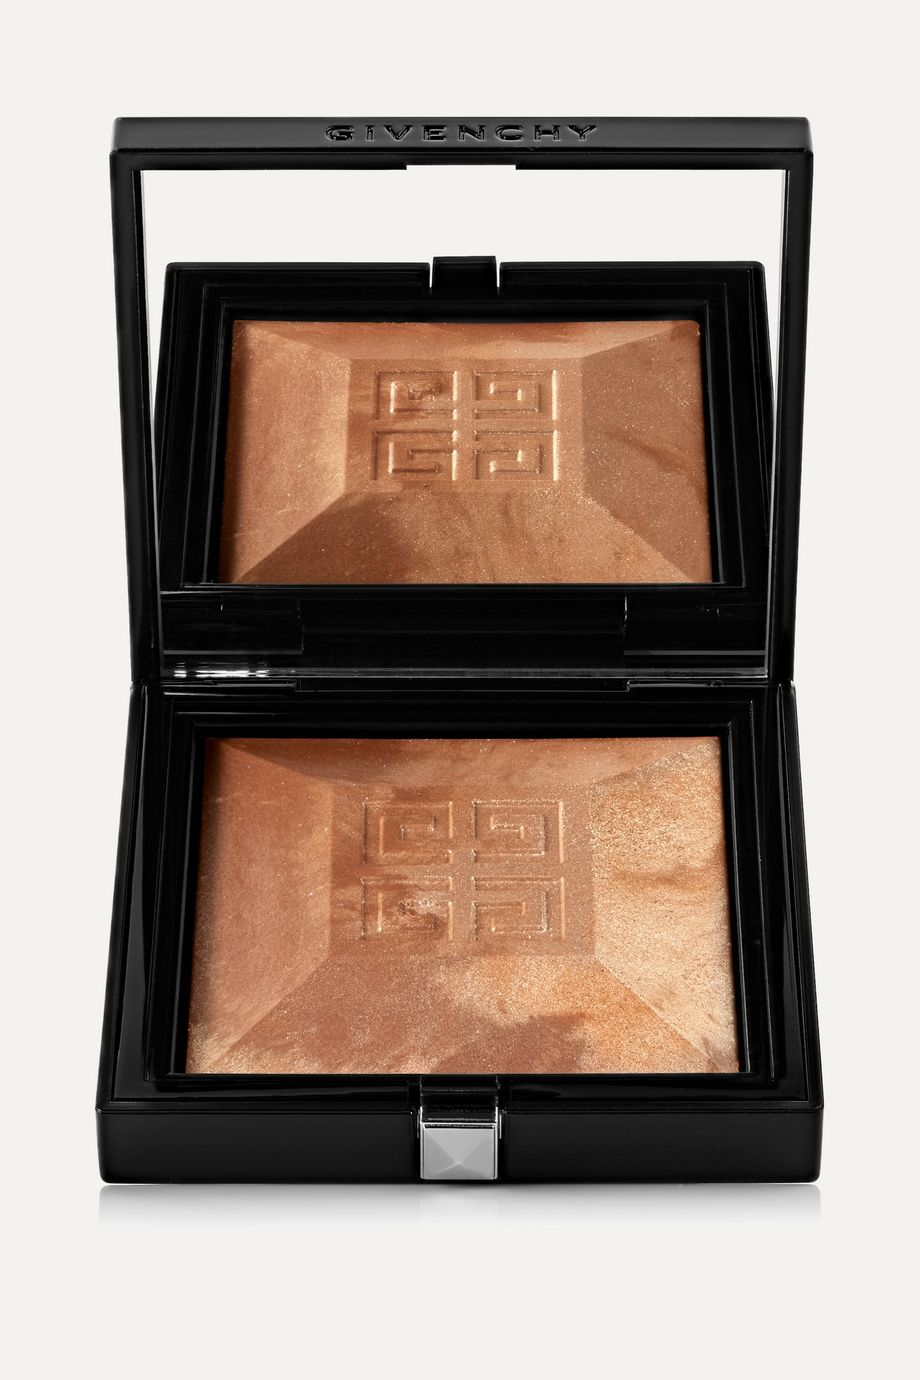 Givenchy Beauty Healthy Glow Powder - 4.5 Naturel Doré